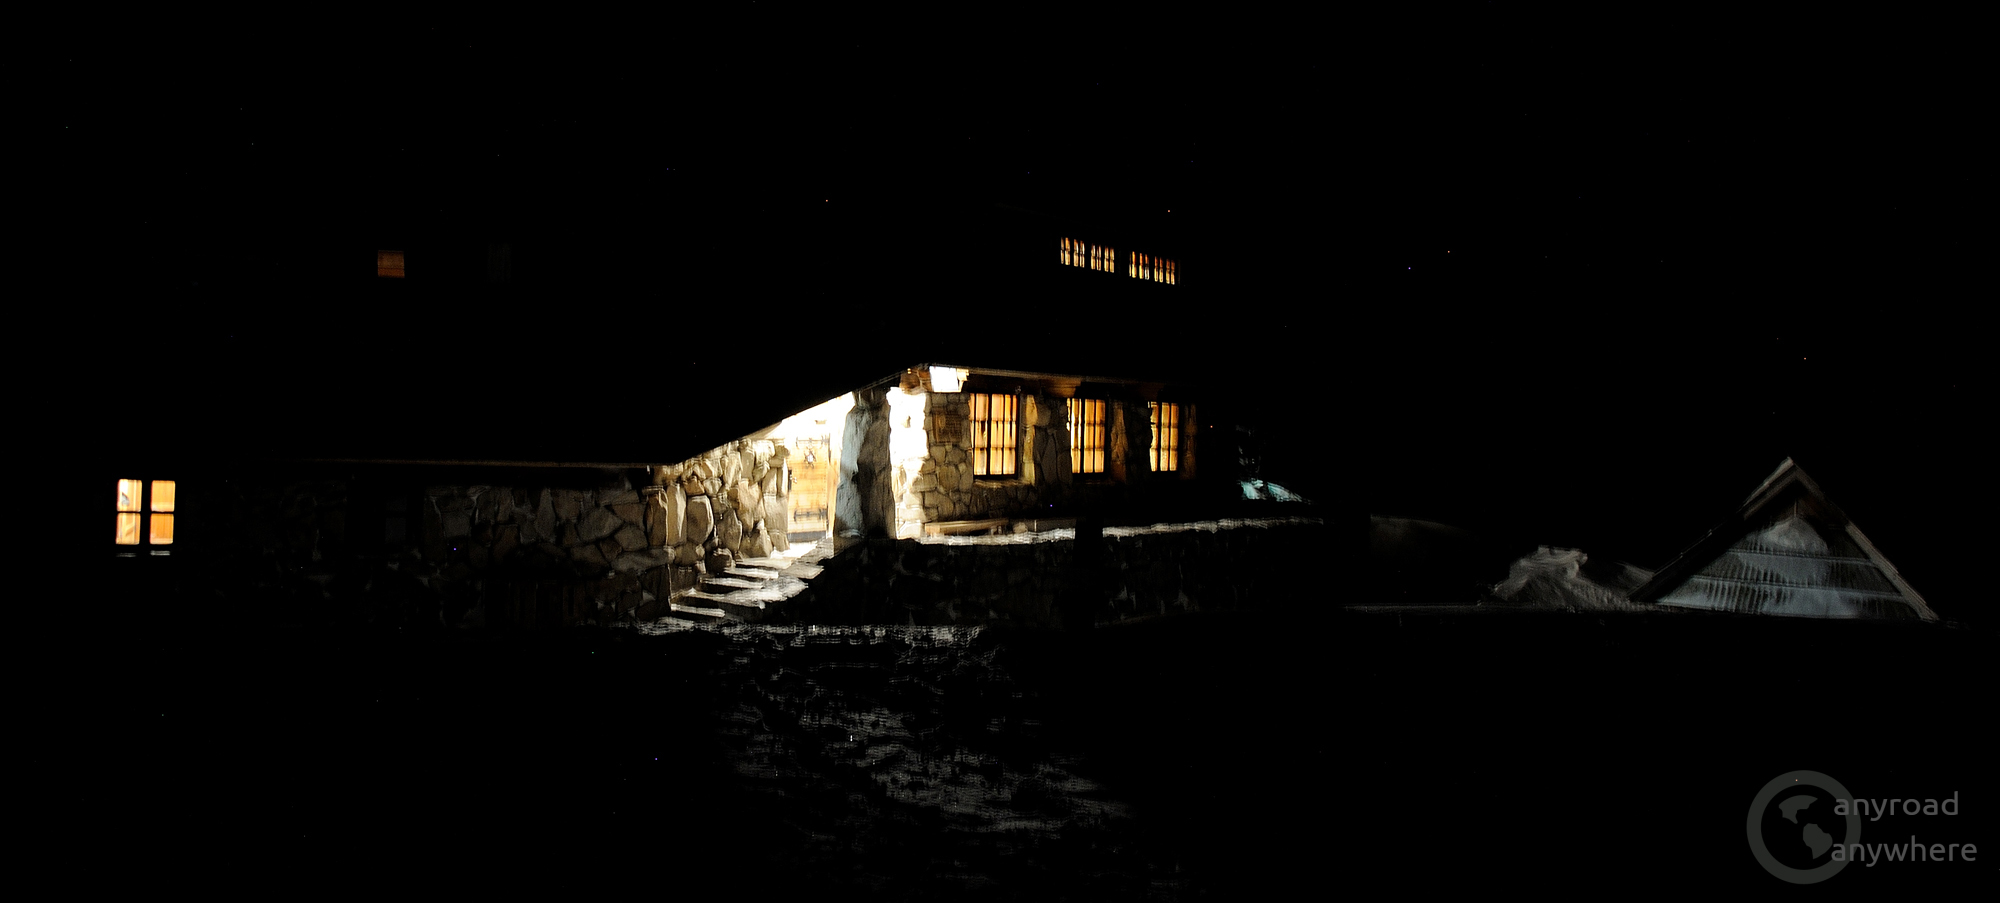 Inviting lights of the mountain shelter on a cold winter day